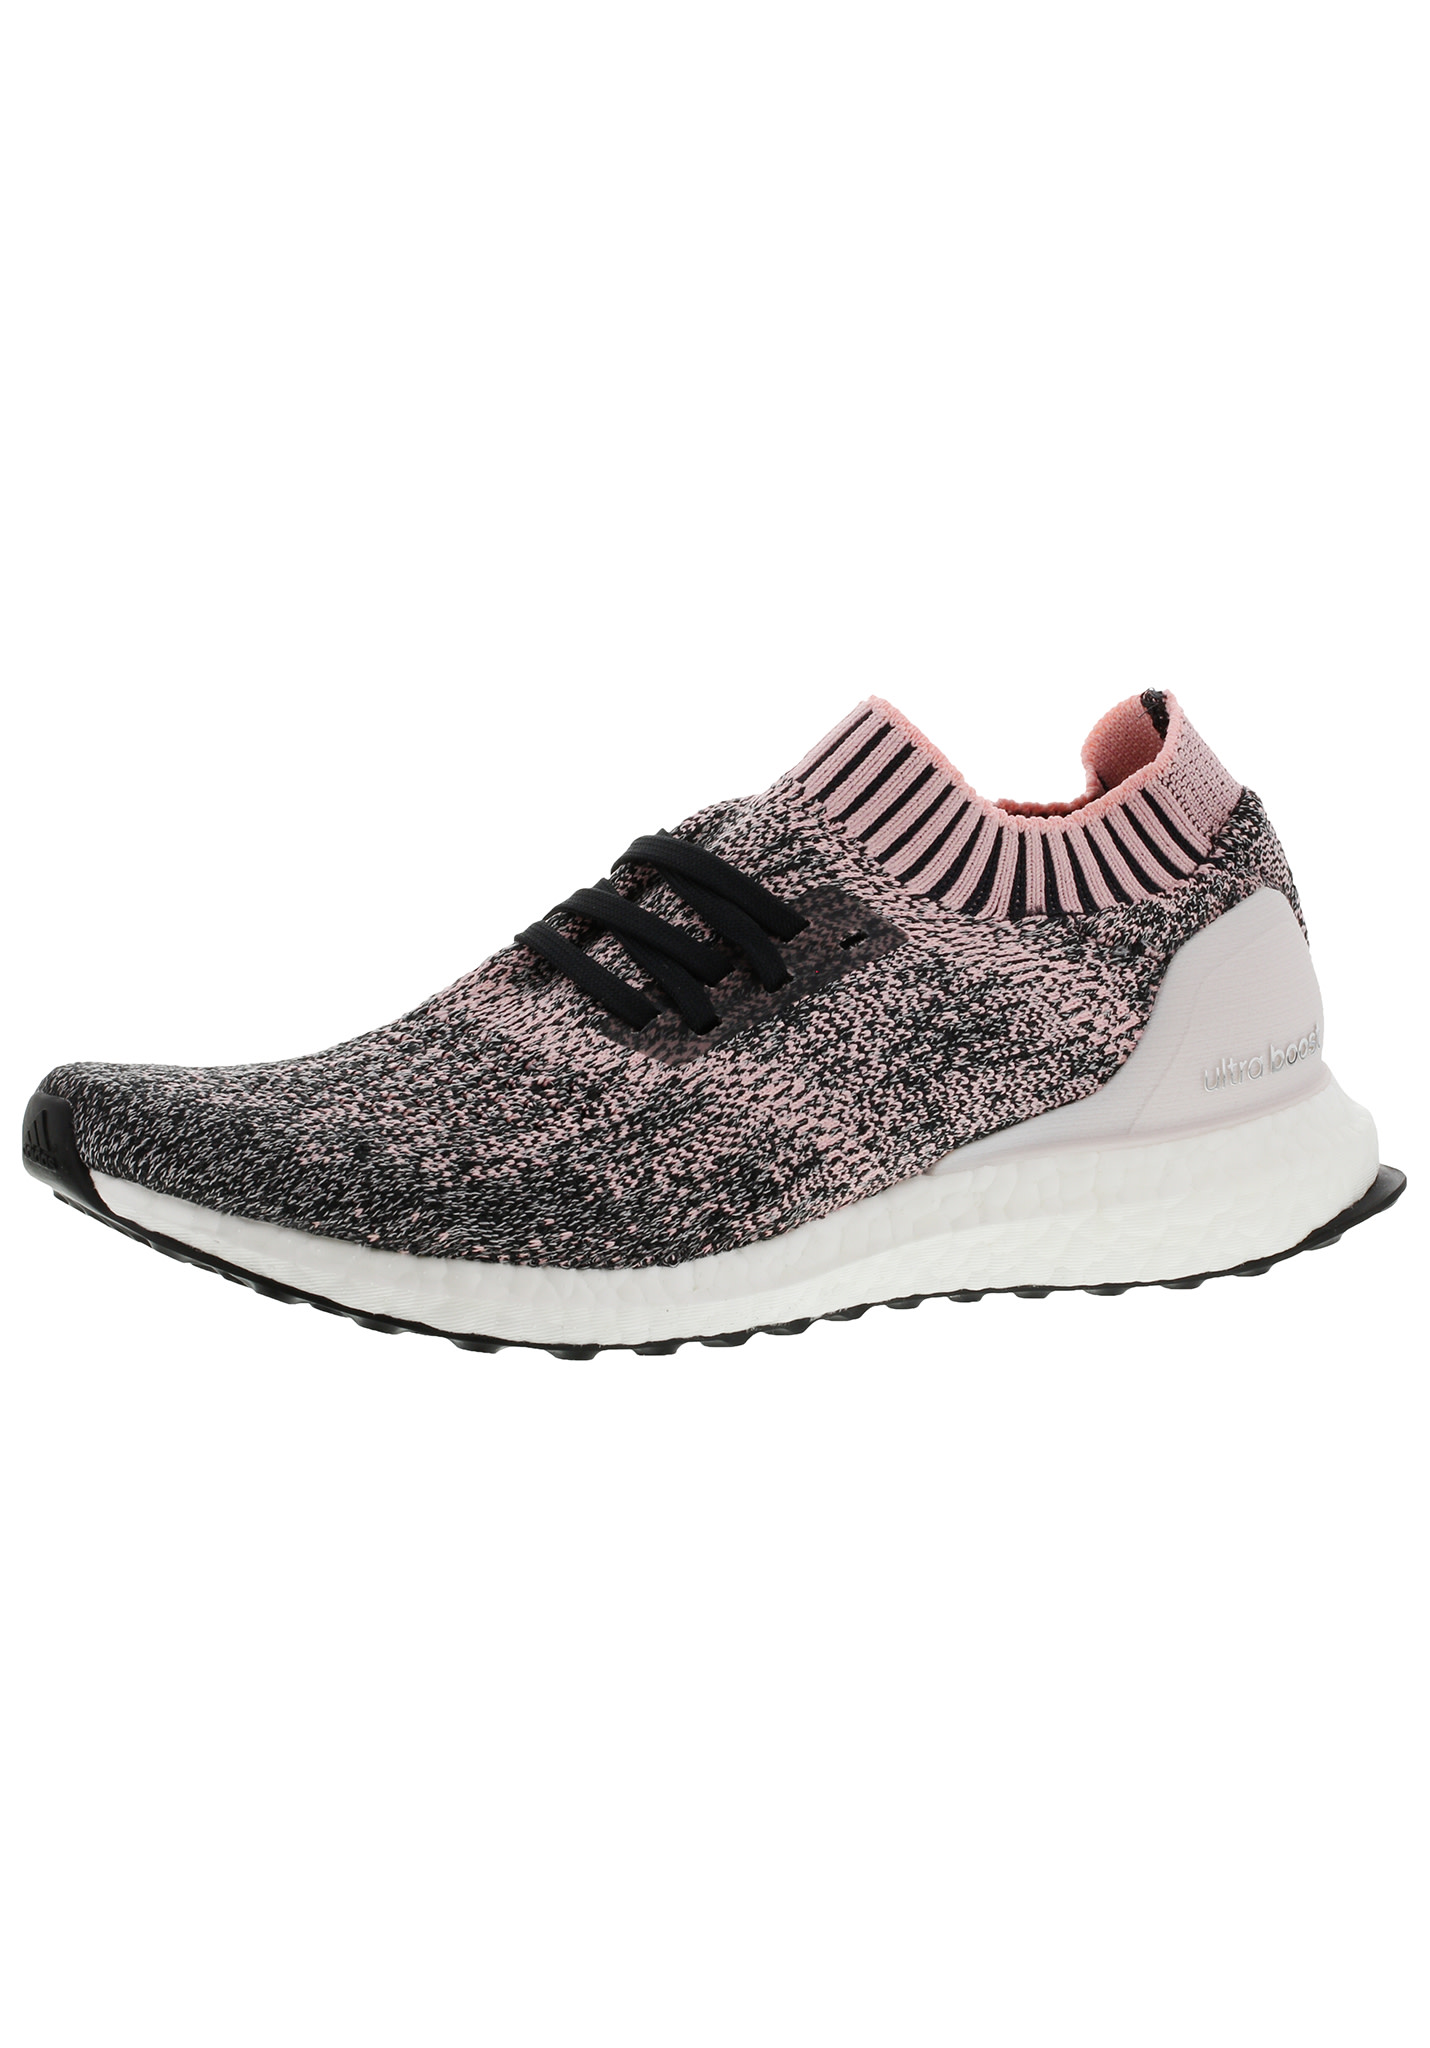 Femme Pour Chaussures Adidas Uncaged Rose Ultra Boost Running UVqSpGzLM